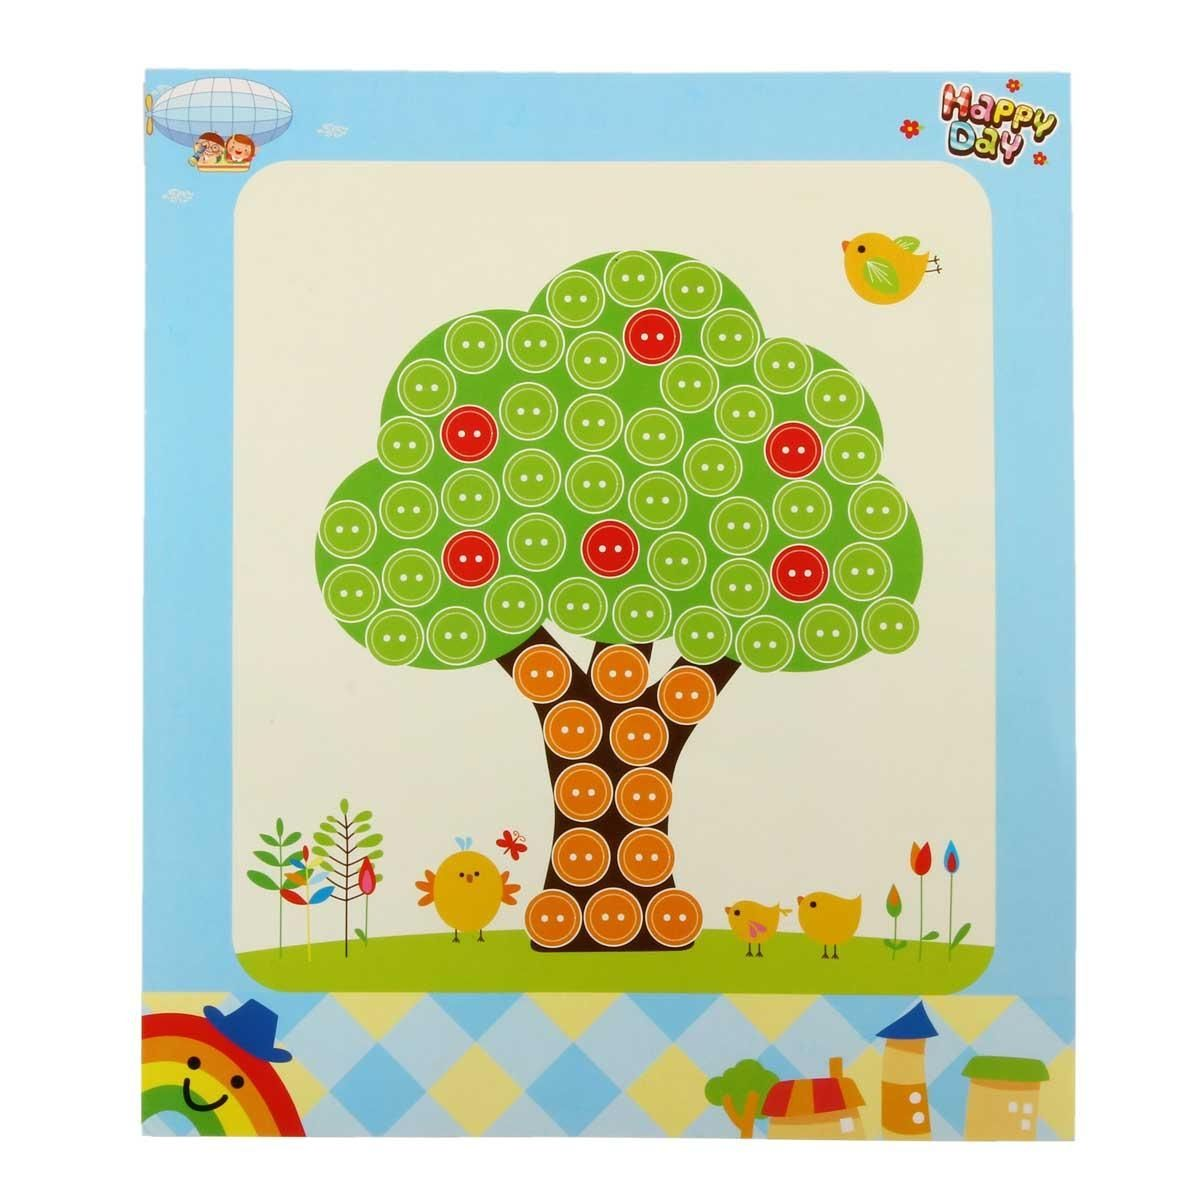 drawing games on paper Generic 1 Pc Handmade DIY Baby Kids Games Craft 3D Puzzles